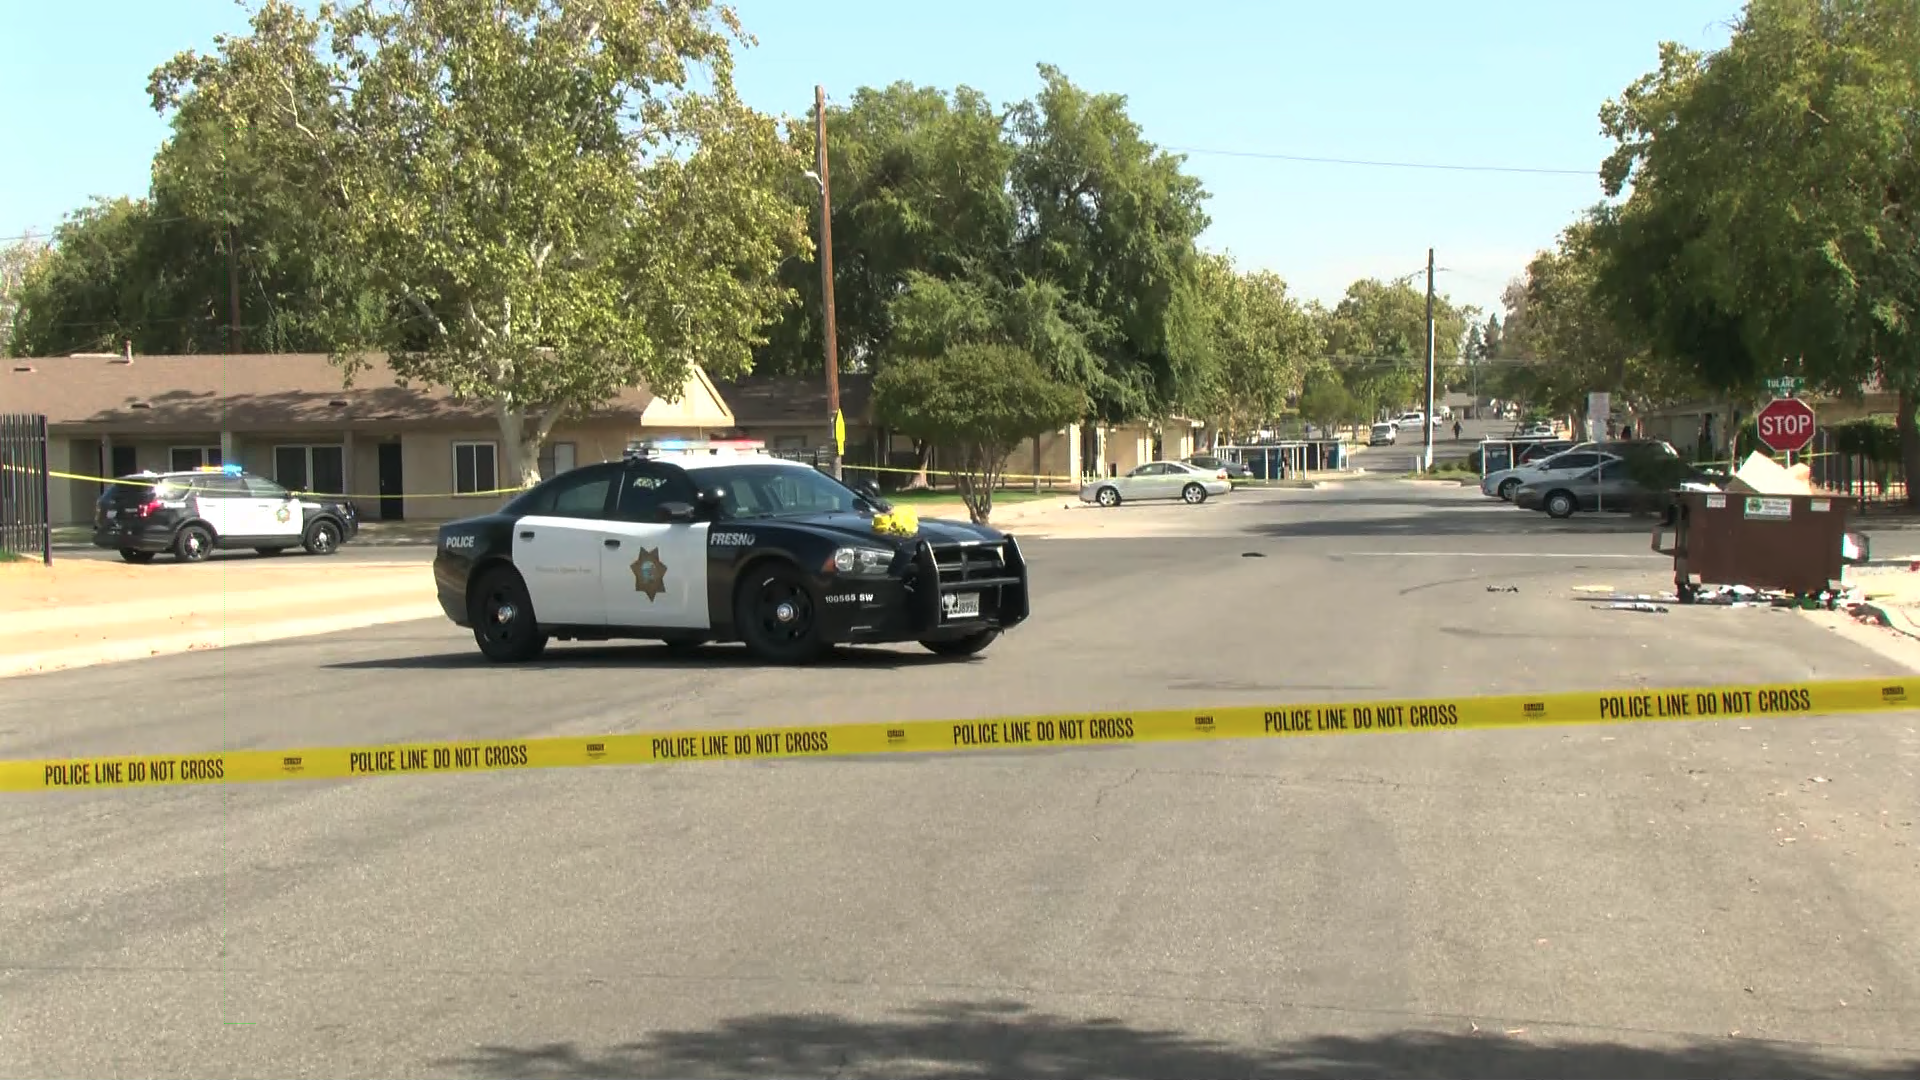 Teen shot while walking away from school, suspect escapes, Fresno Police say